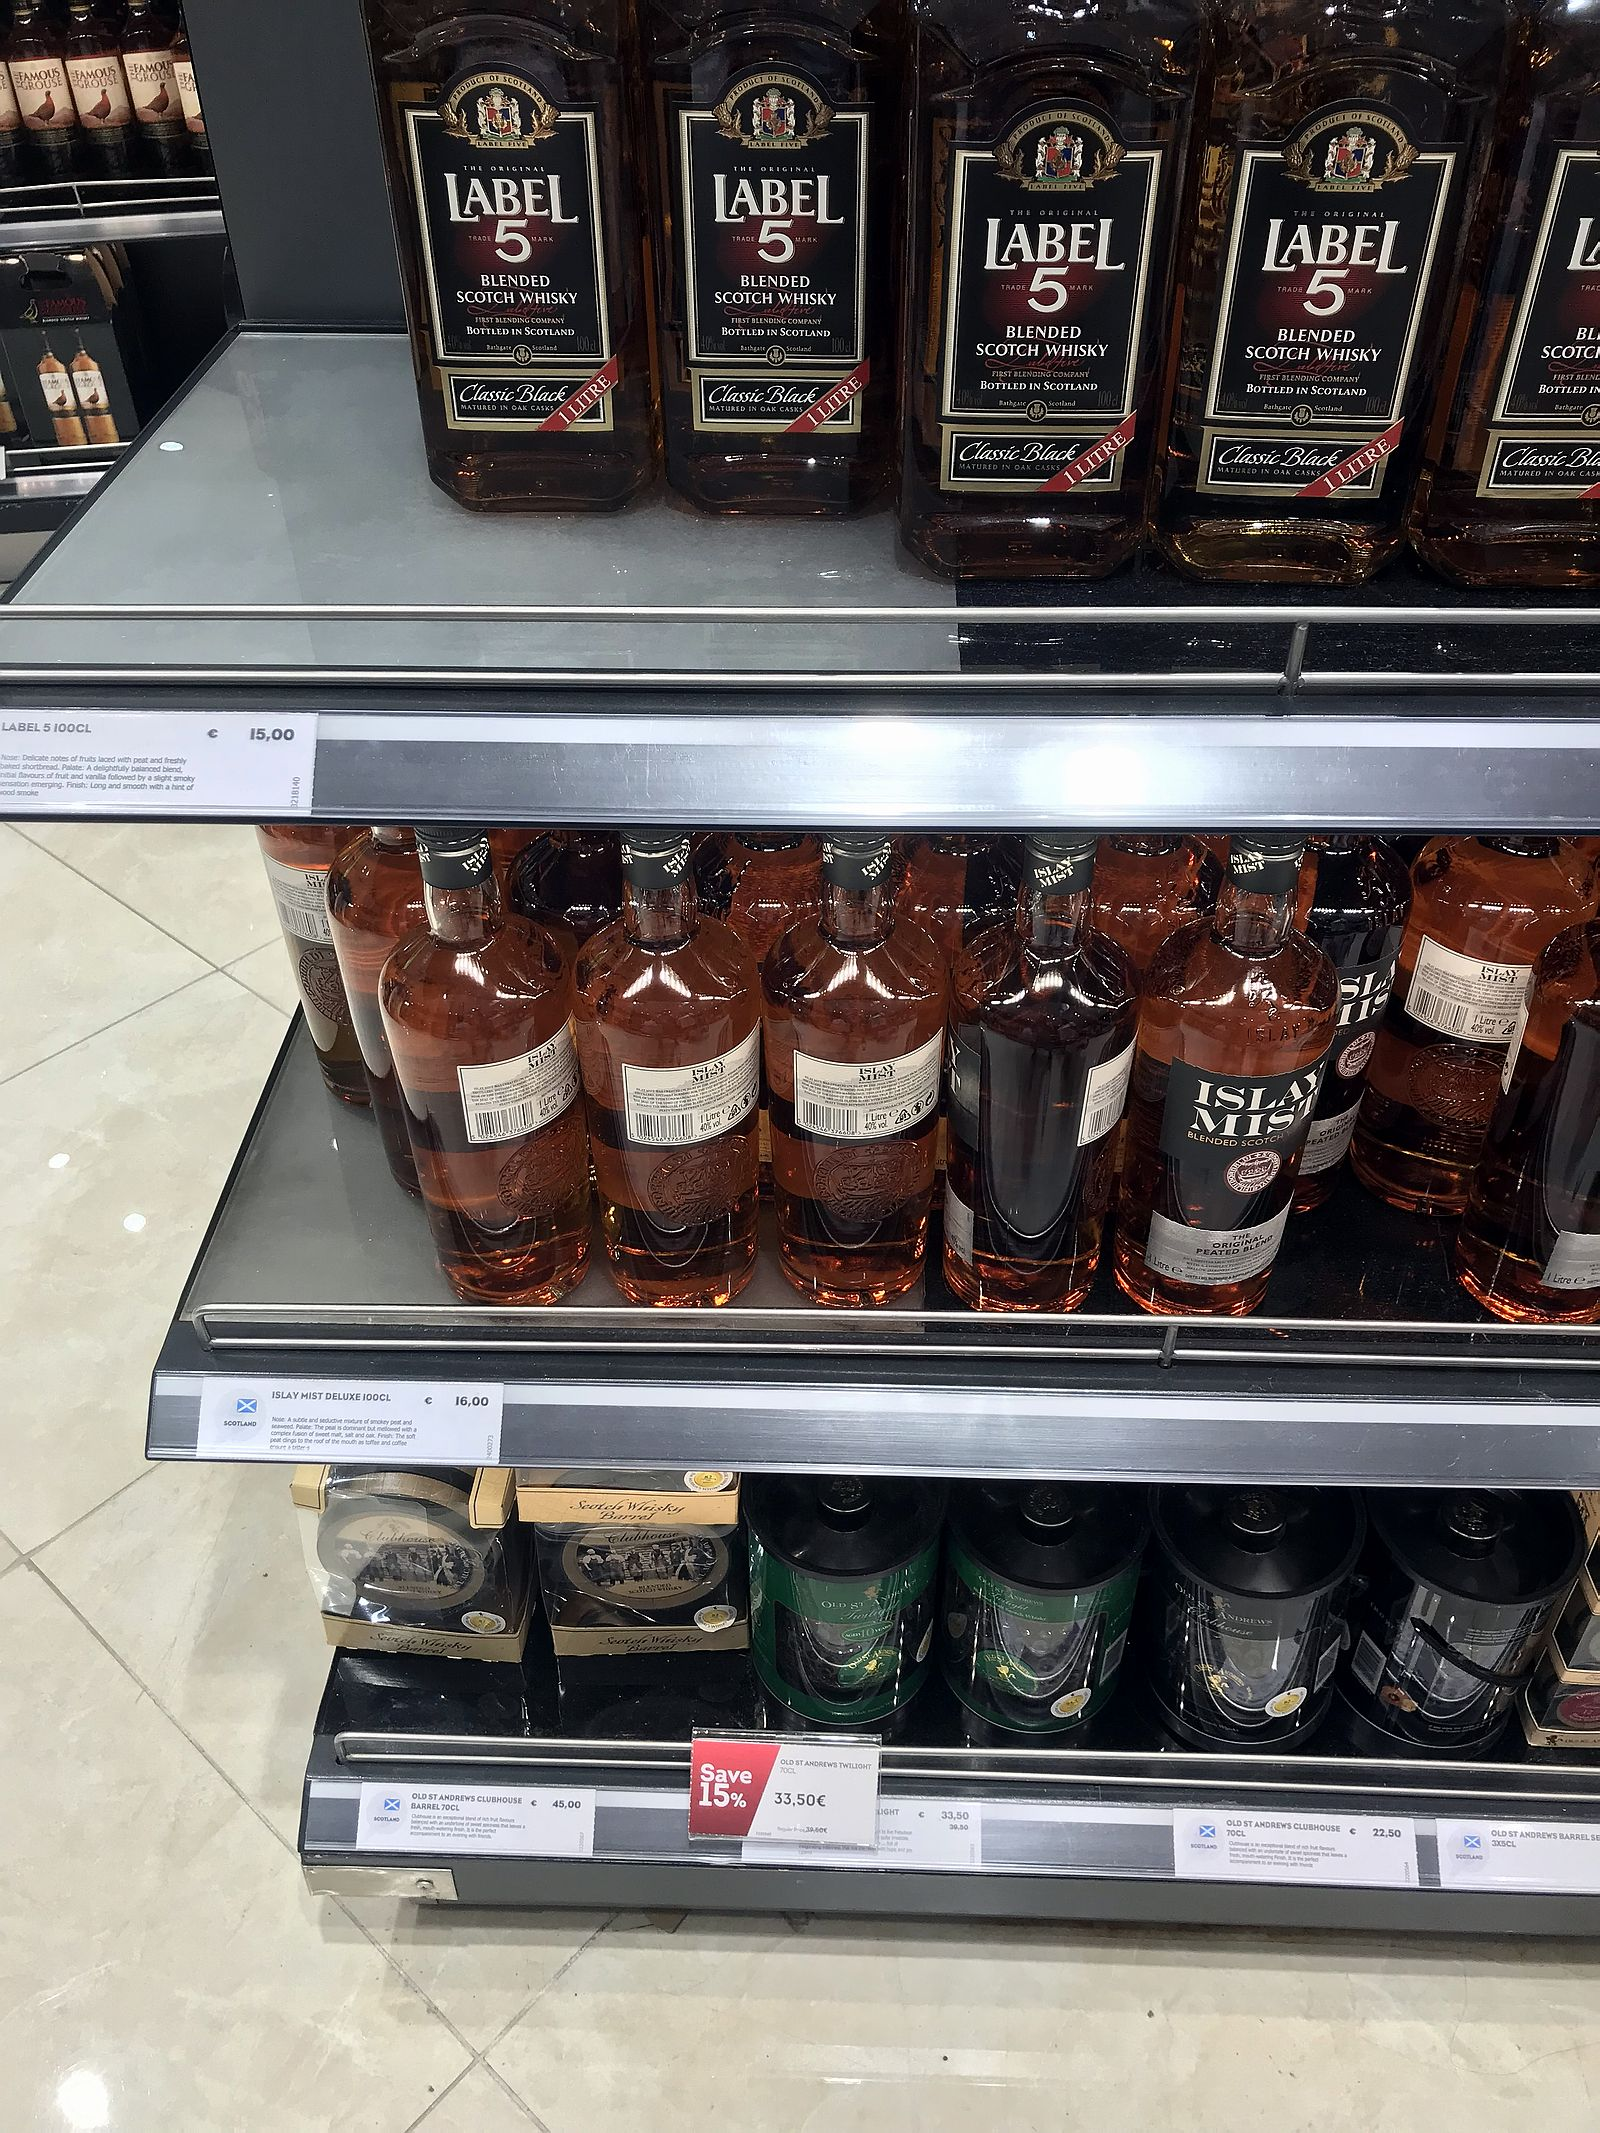 Duty free Antalya, august 2019, whiskey Label 5, Islay mist